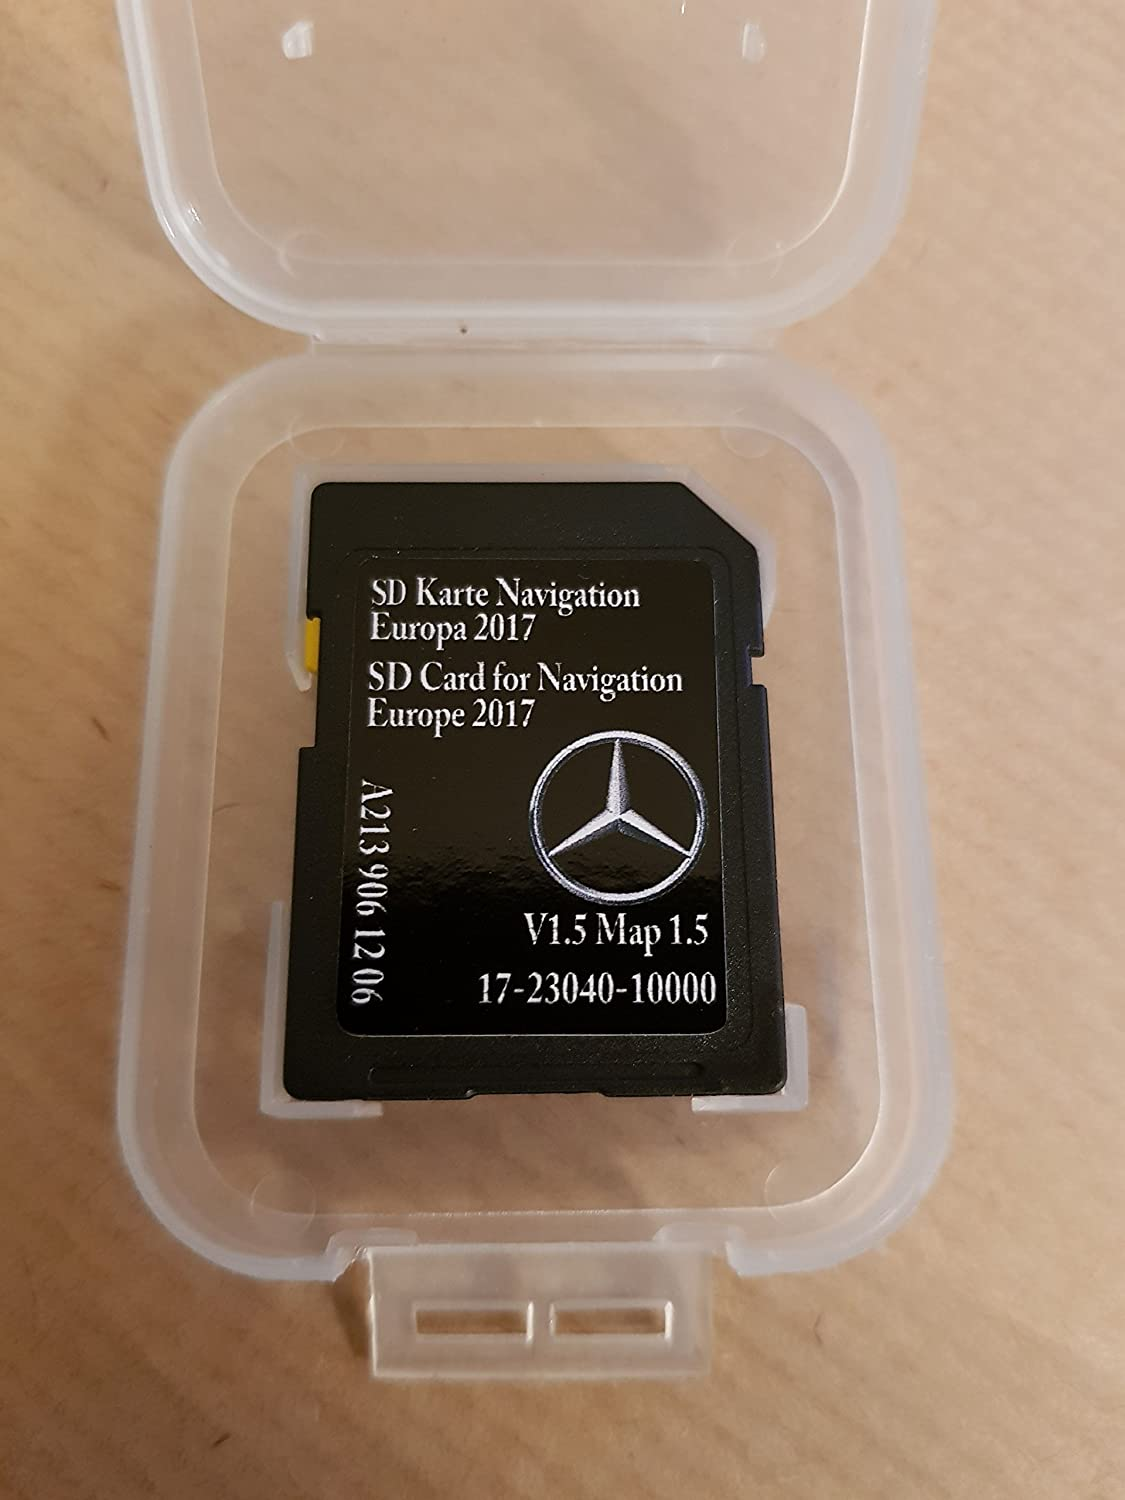 SD CARD GPS MERCEDES - w213 Classe E - NTG5.5 - Europe 2017 v1.5 - A2139061206